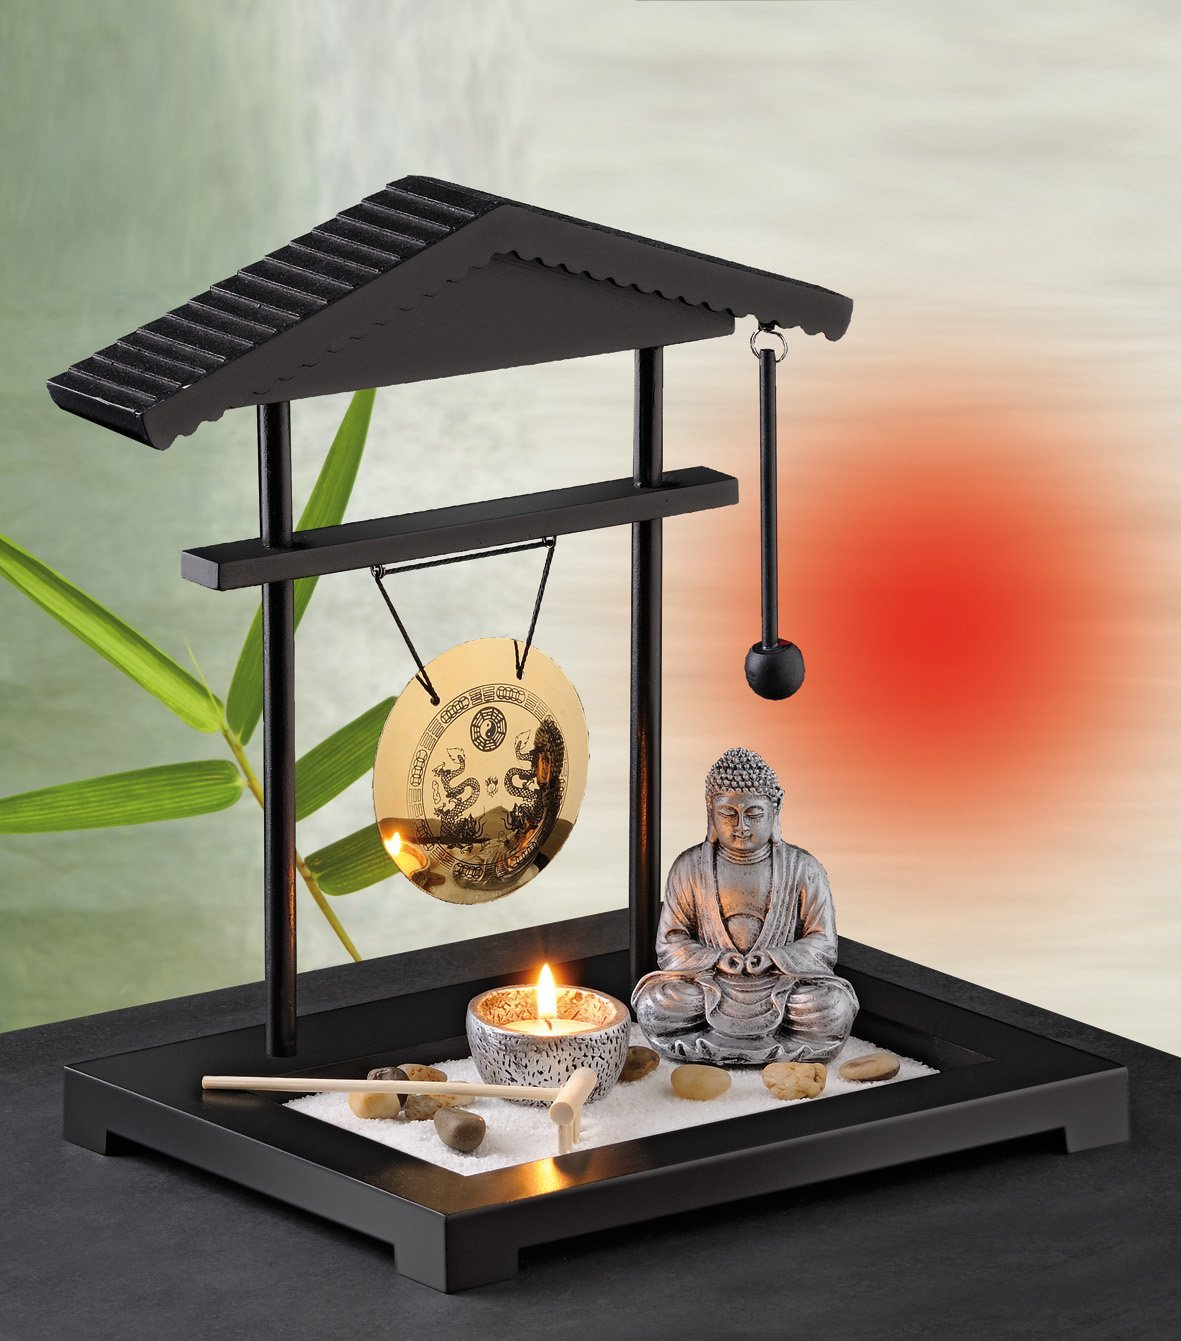 Decoracion zen amazon hoy lowcost - Decoracion feng shui ...